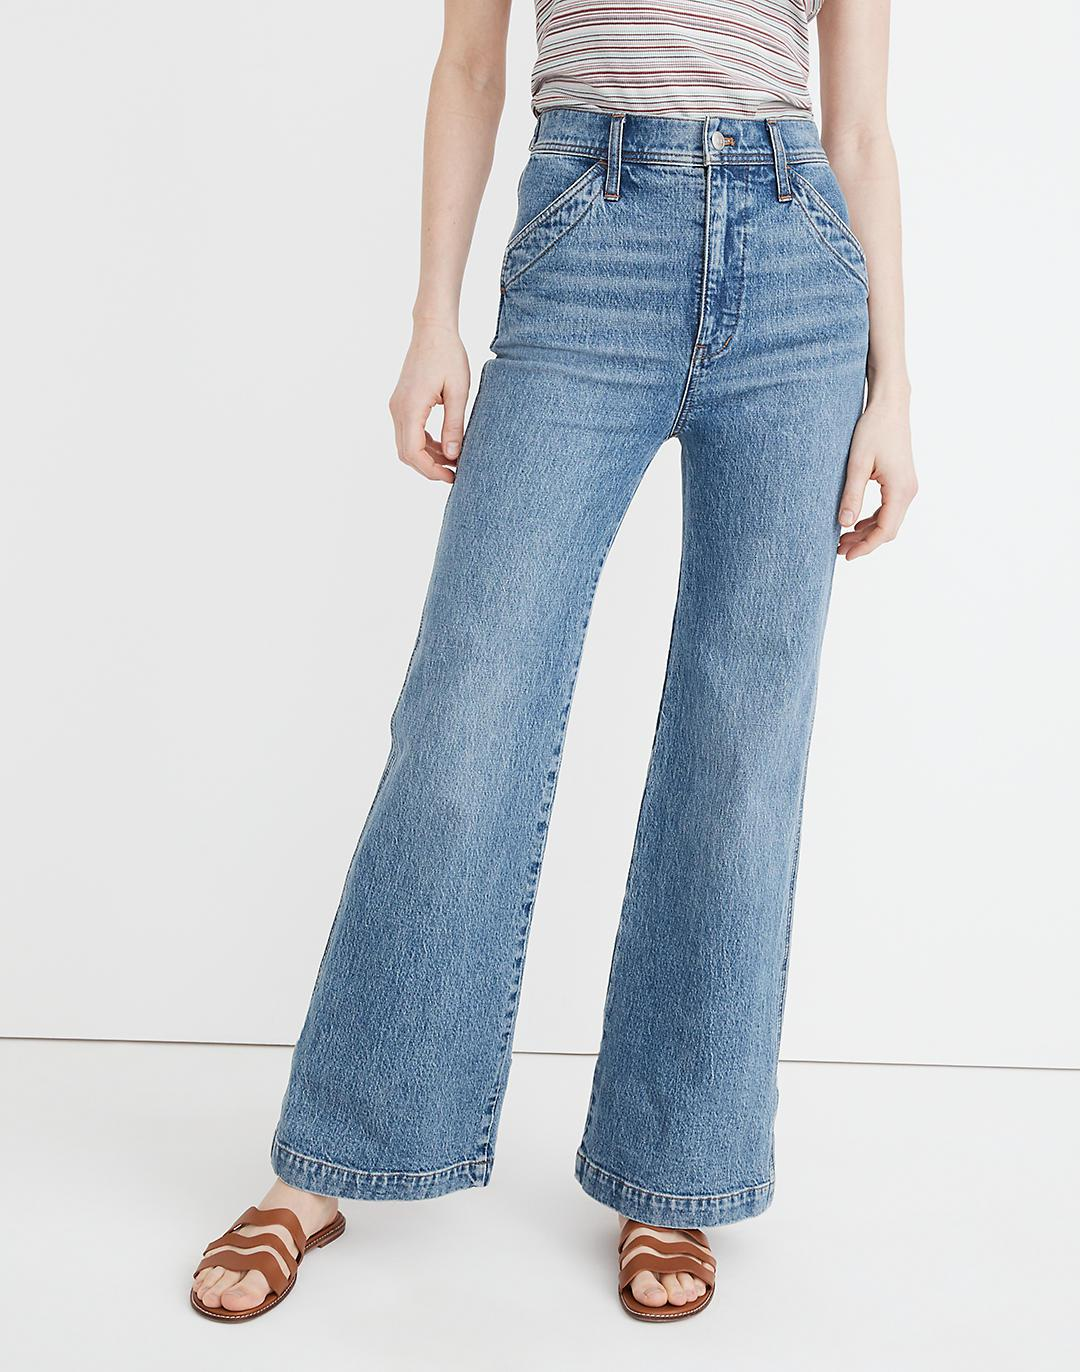 """11"""" High-Rise Flare Jeans in Erickson Wash: Stitched-Pocket Edition 3"""